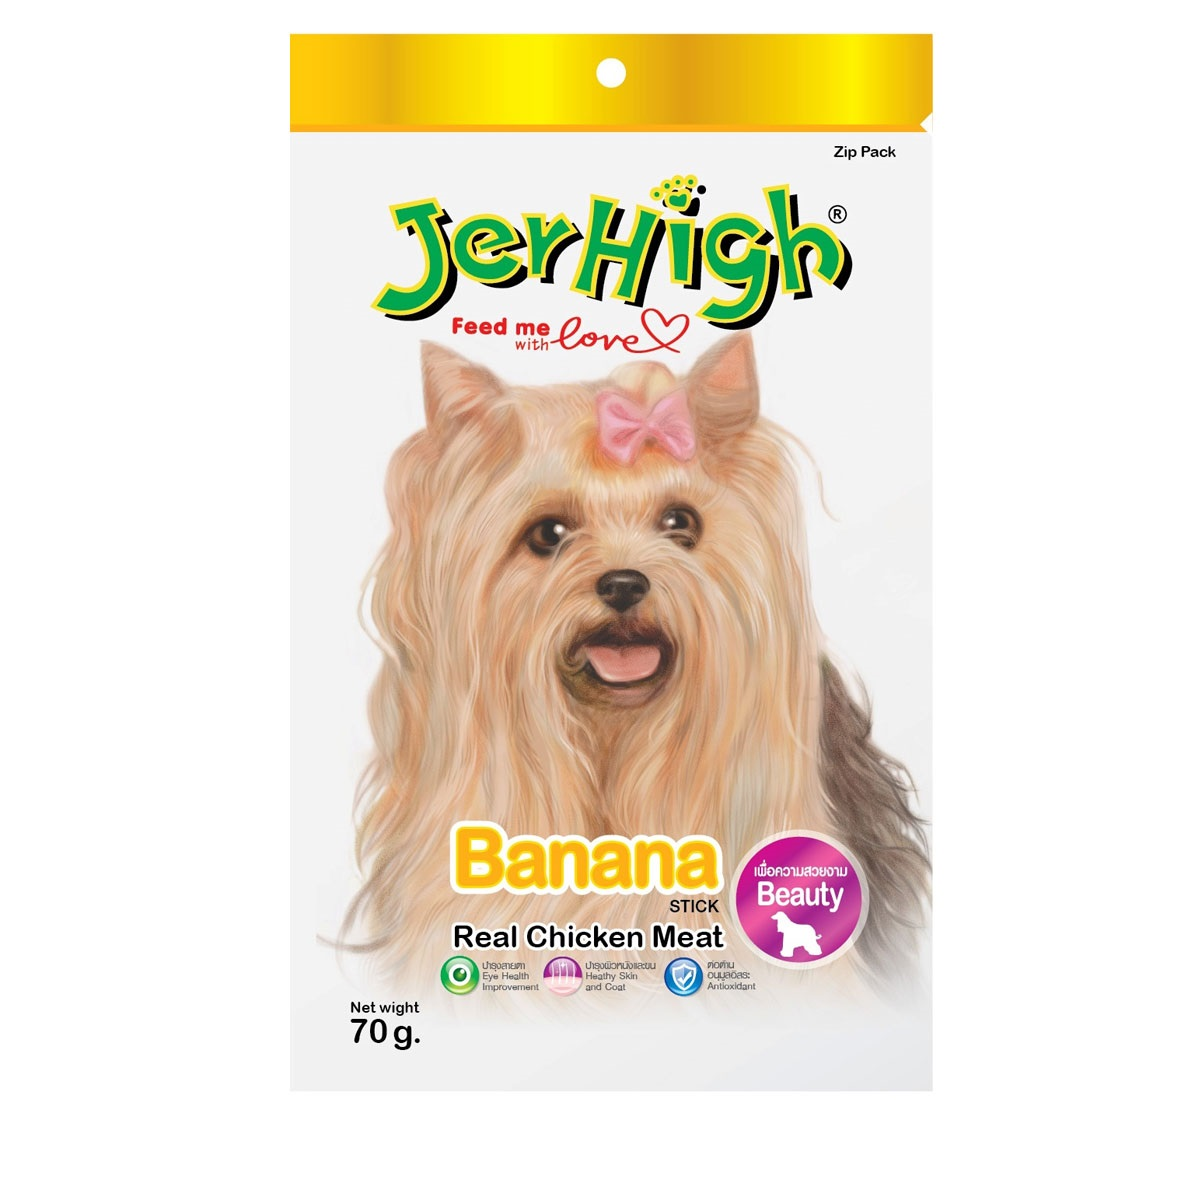 JerHigh Banana Stick Premium Dog Treats 70g x 12 packs